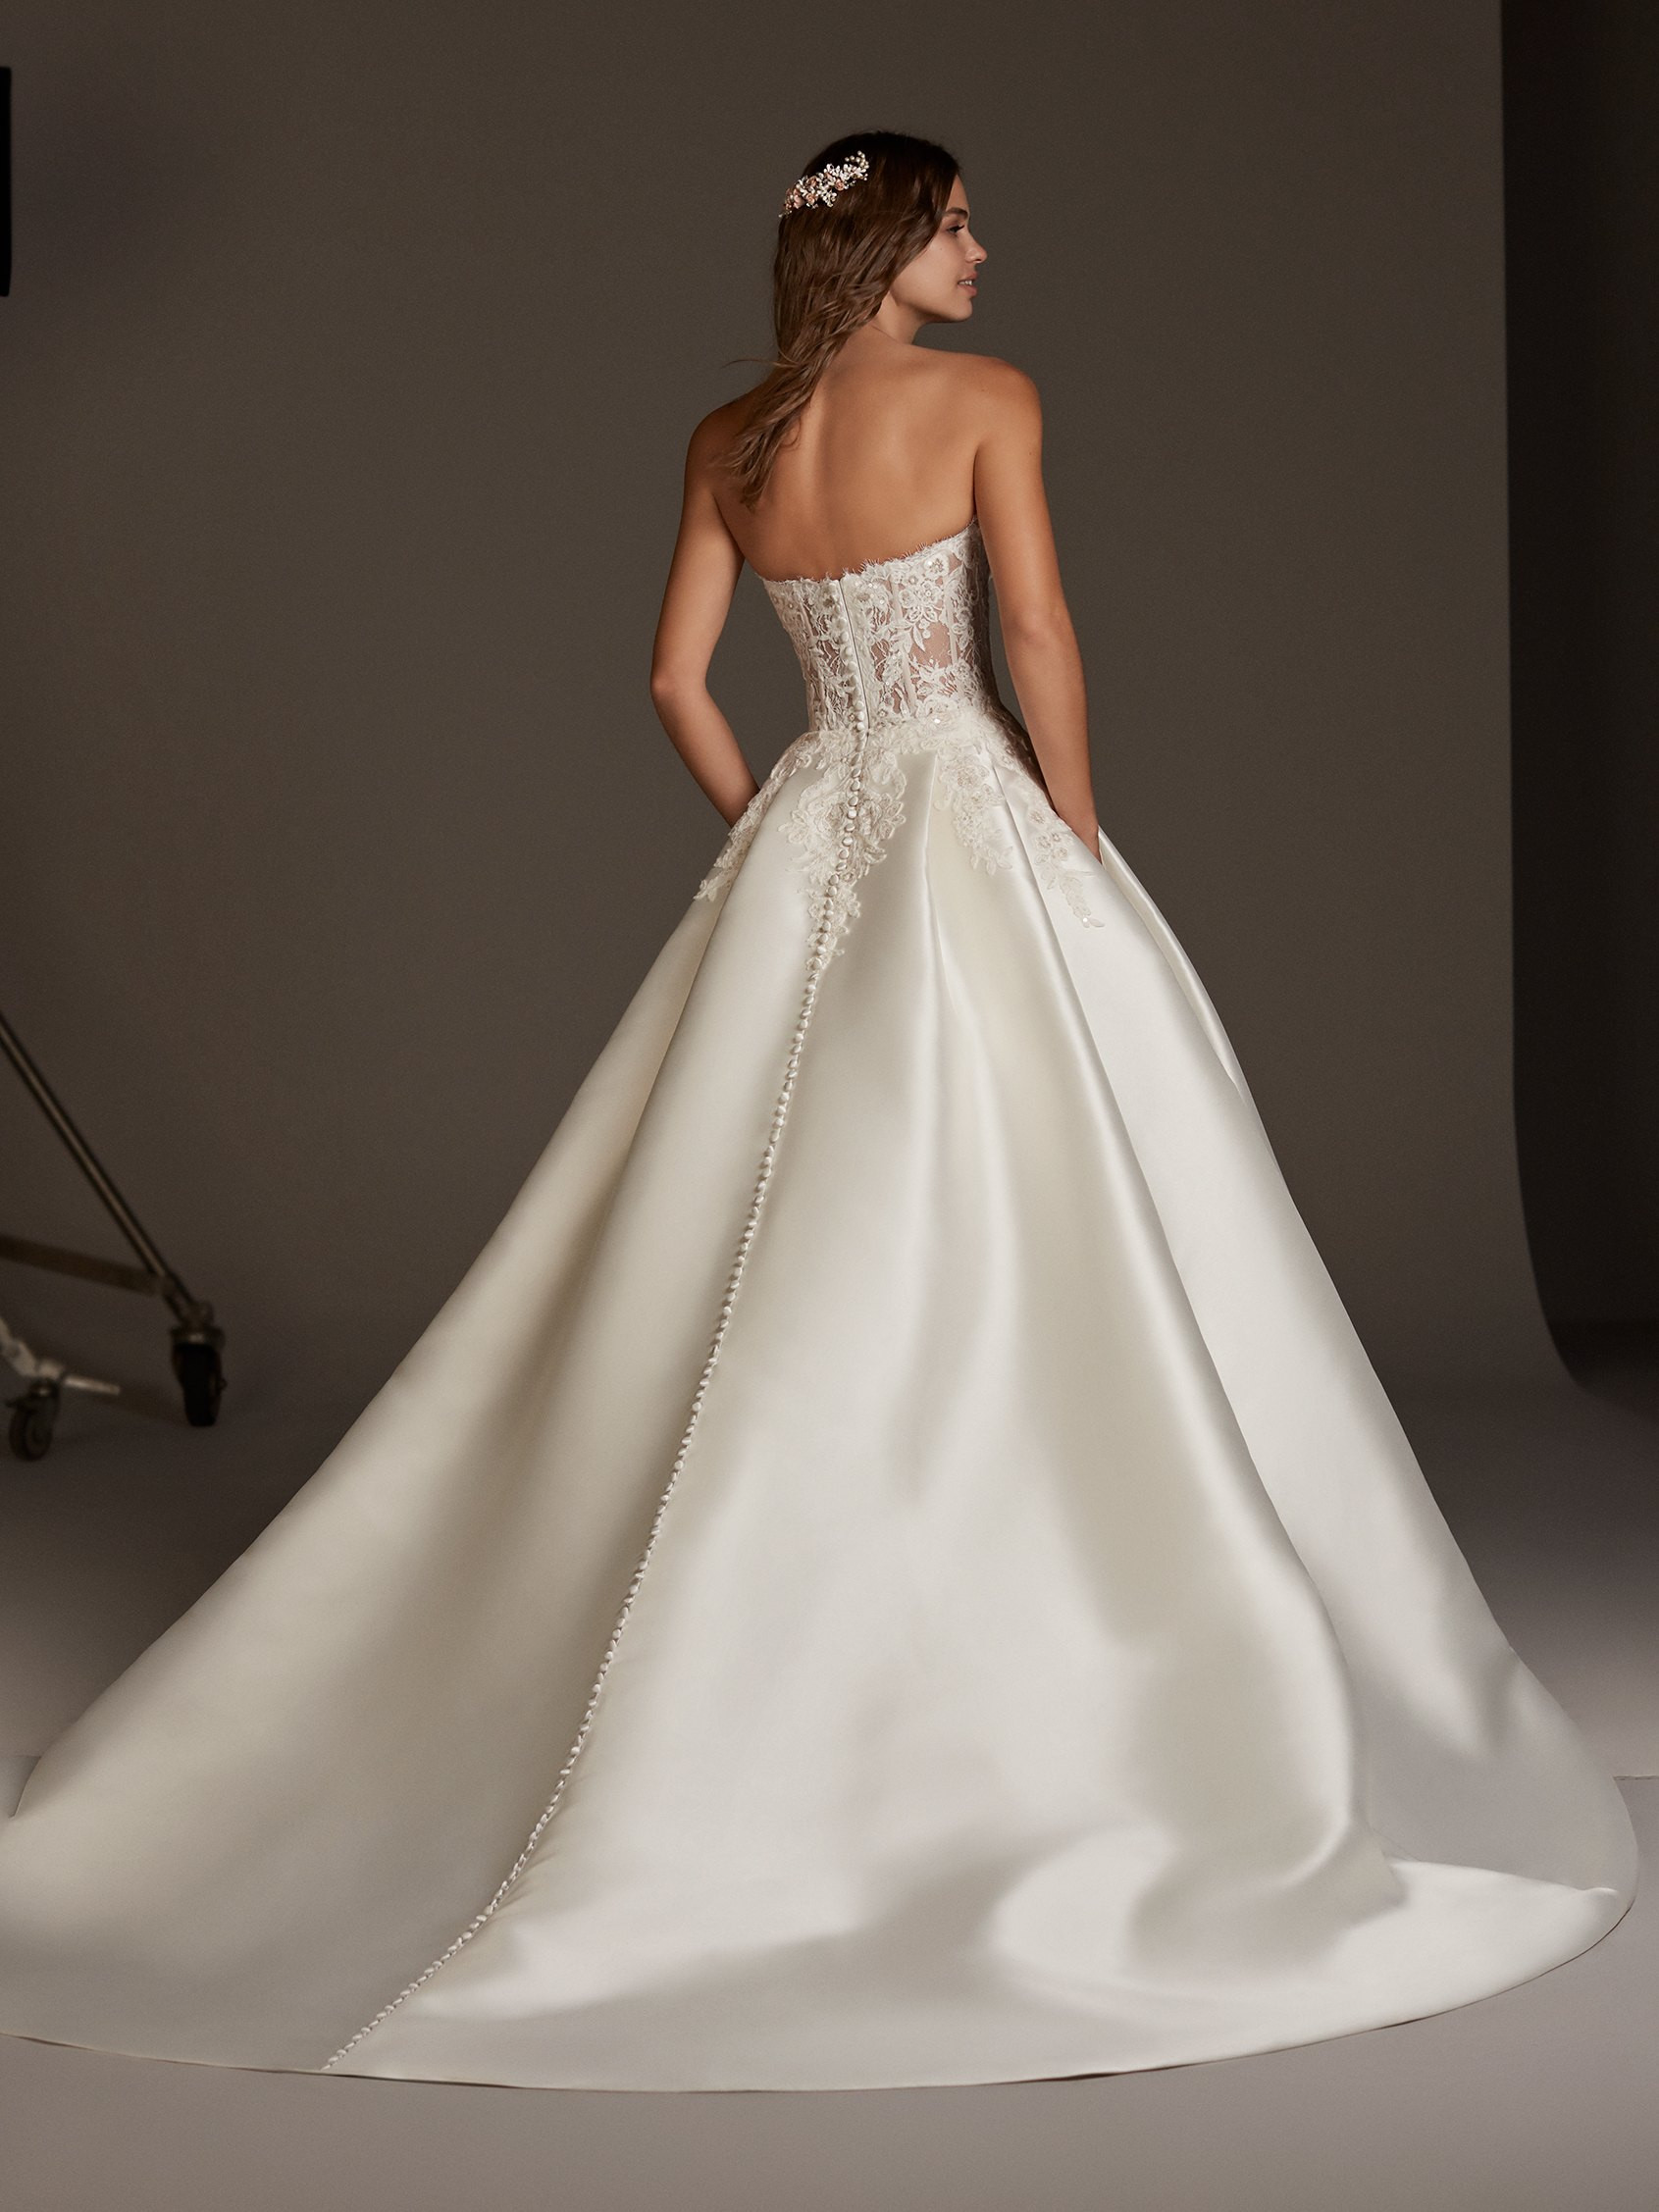 Silk Ball Gown With See Through Lace Corset Bodice